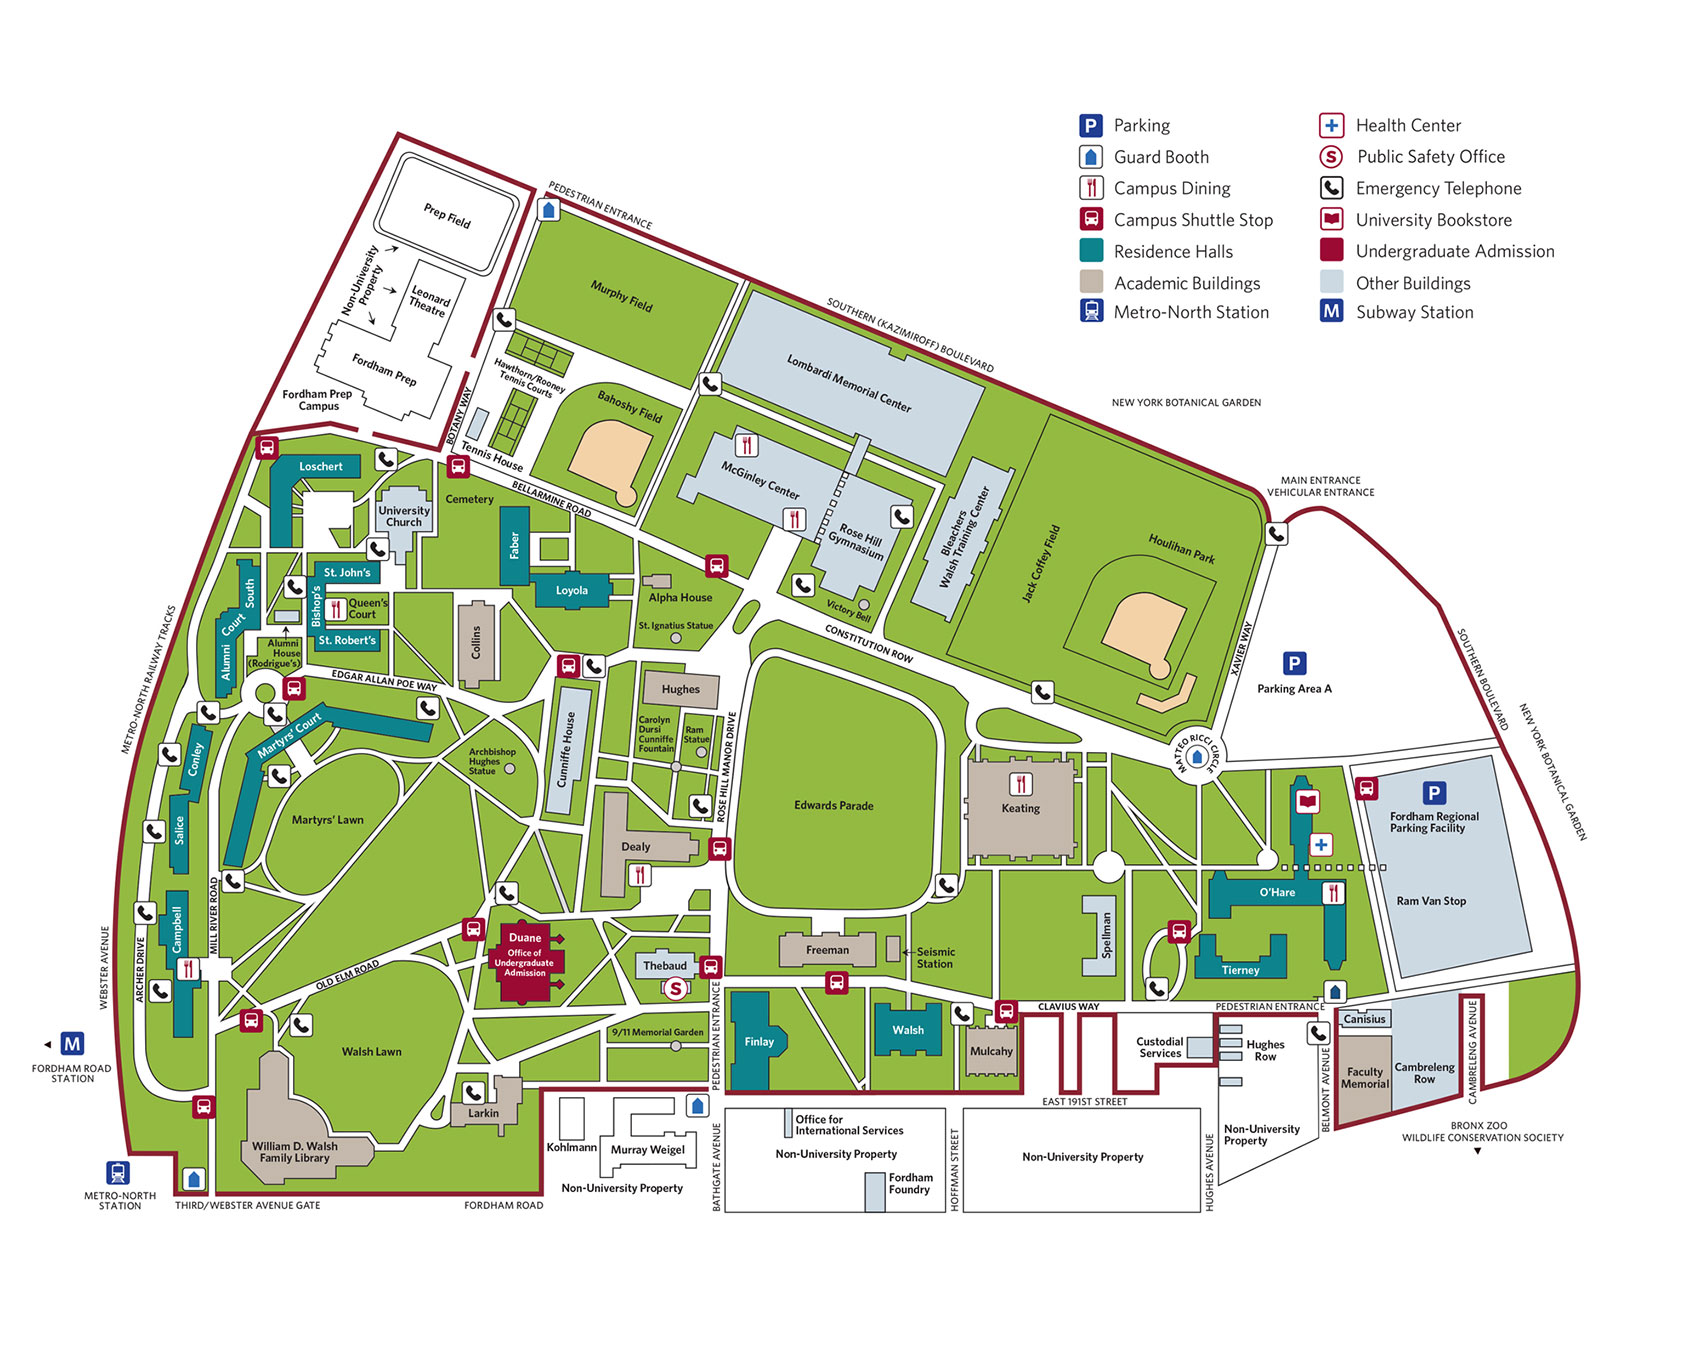 Map of the Rose Hill Campus